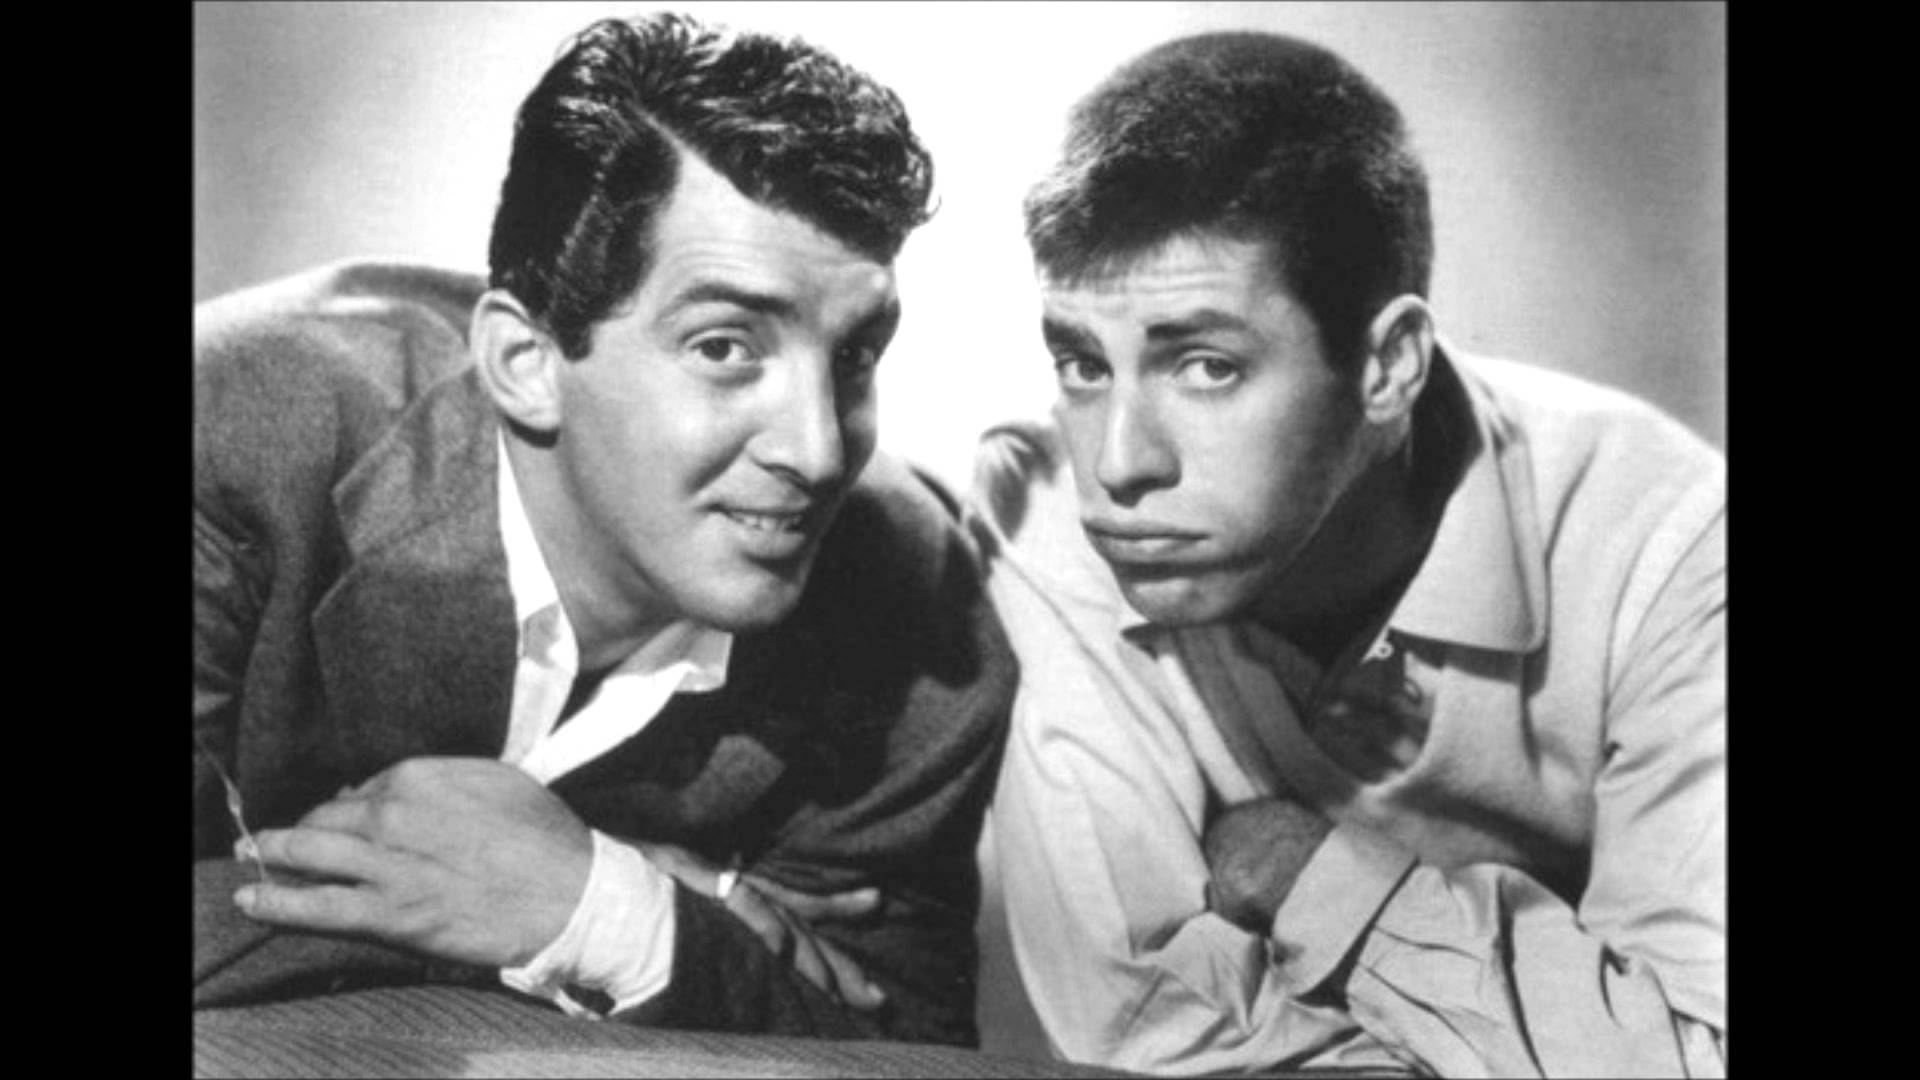 Dean Martin and Jerry Lewis were one of the most succesful screen teams ever